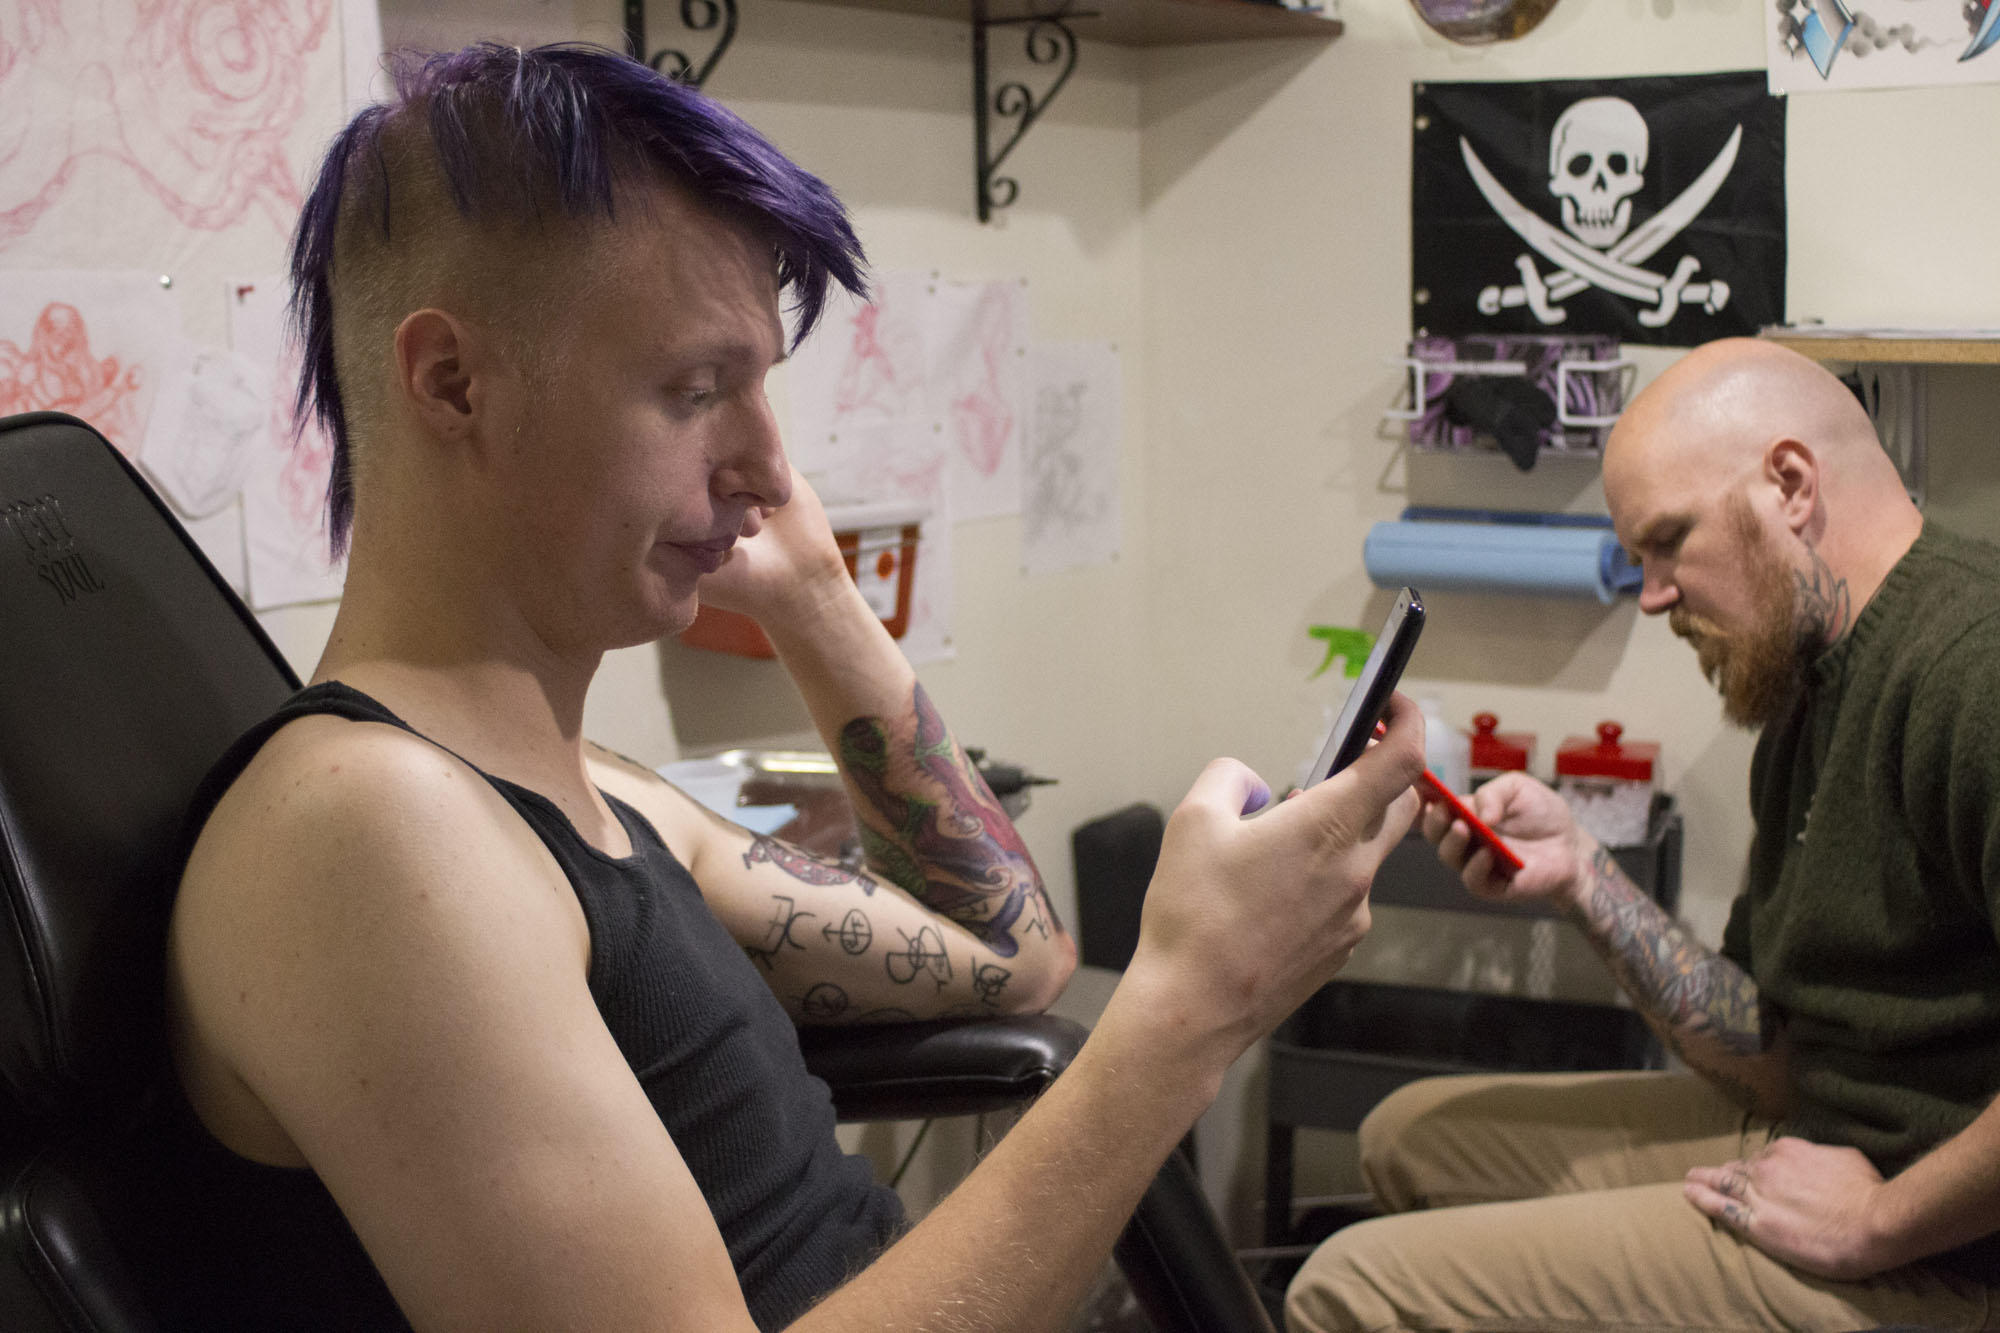 Paterson and Bruce take a break from tattooing Paterson's elbow. Paterson and Bruce both immediately grabbed their phones after almost an hour and a half of work on Paterson's sleeve.